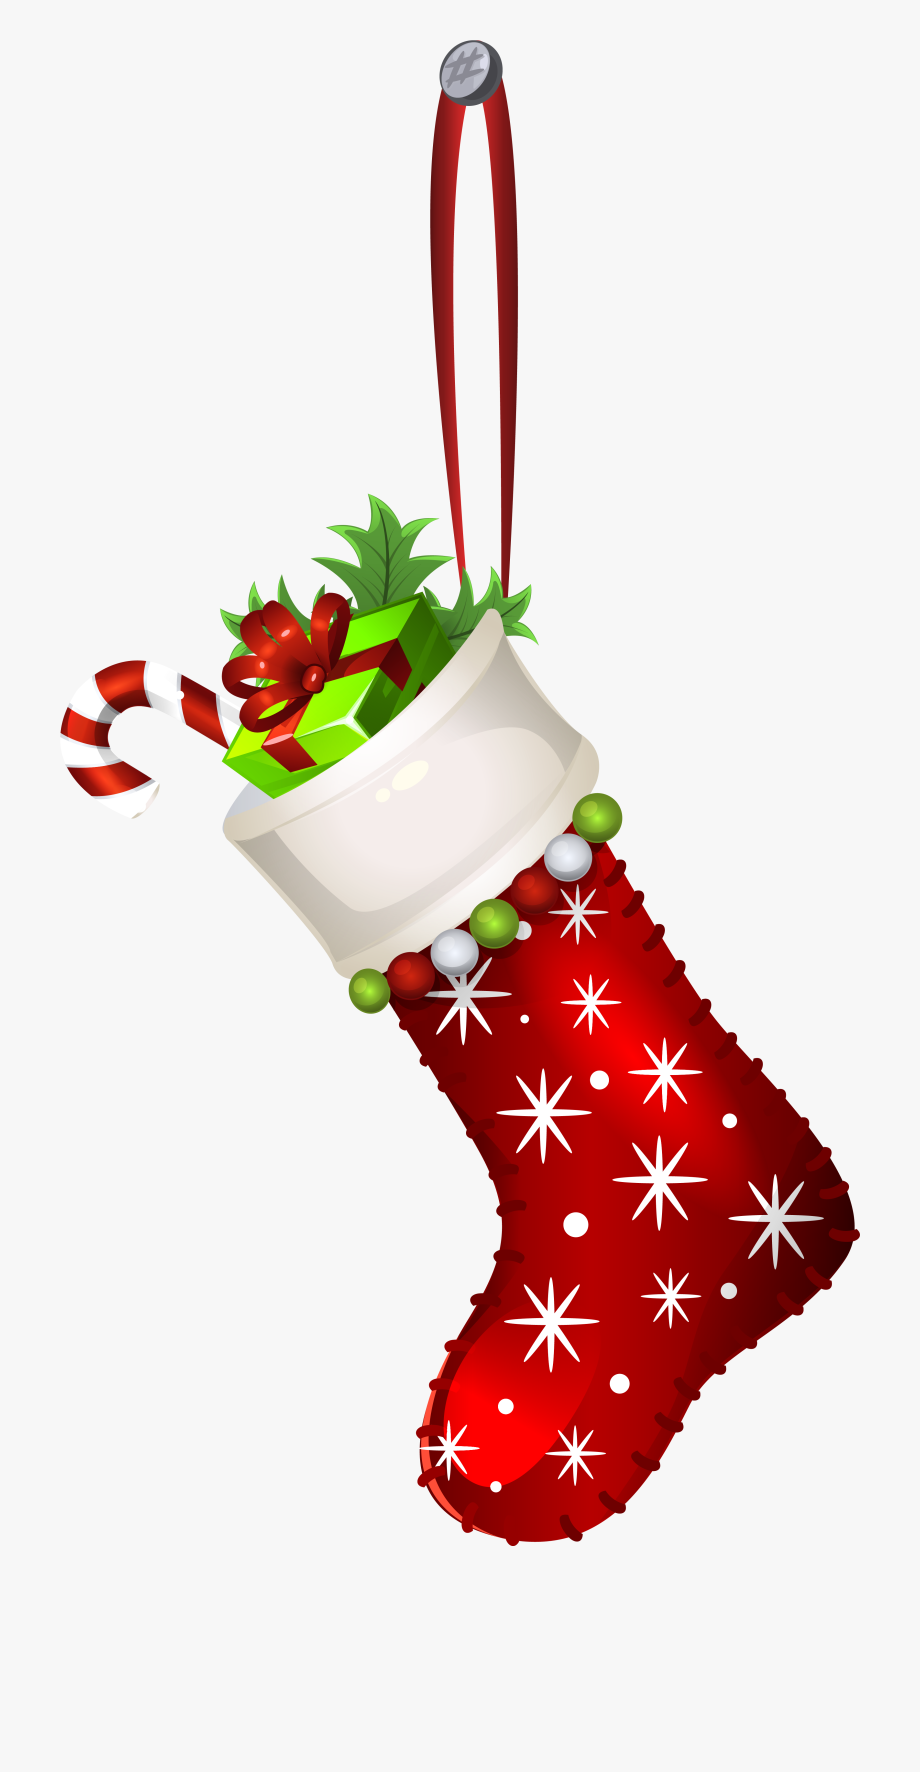 Red Christmas Stocking Transparent Png Clip Art Image.